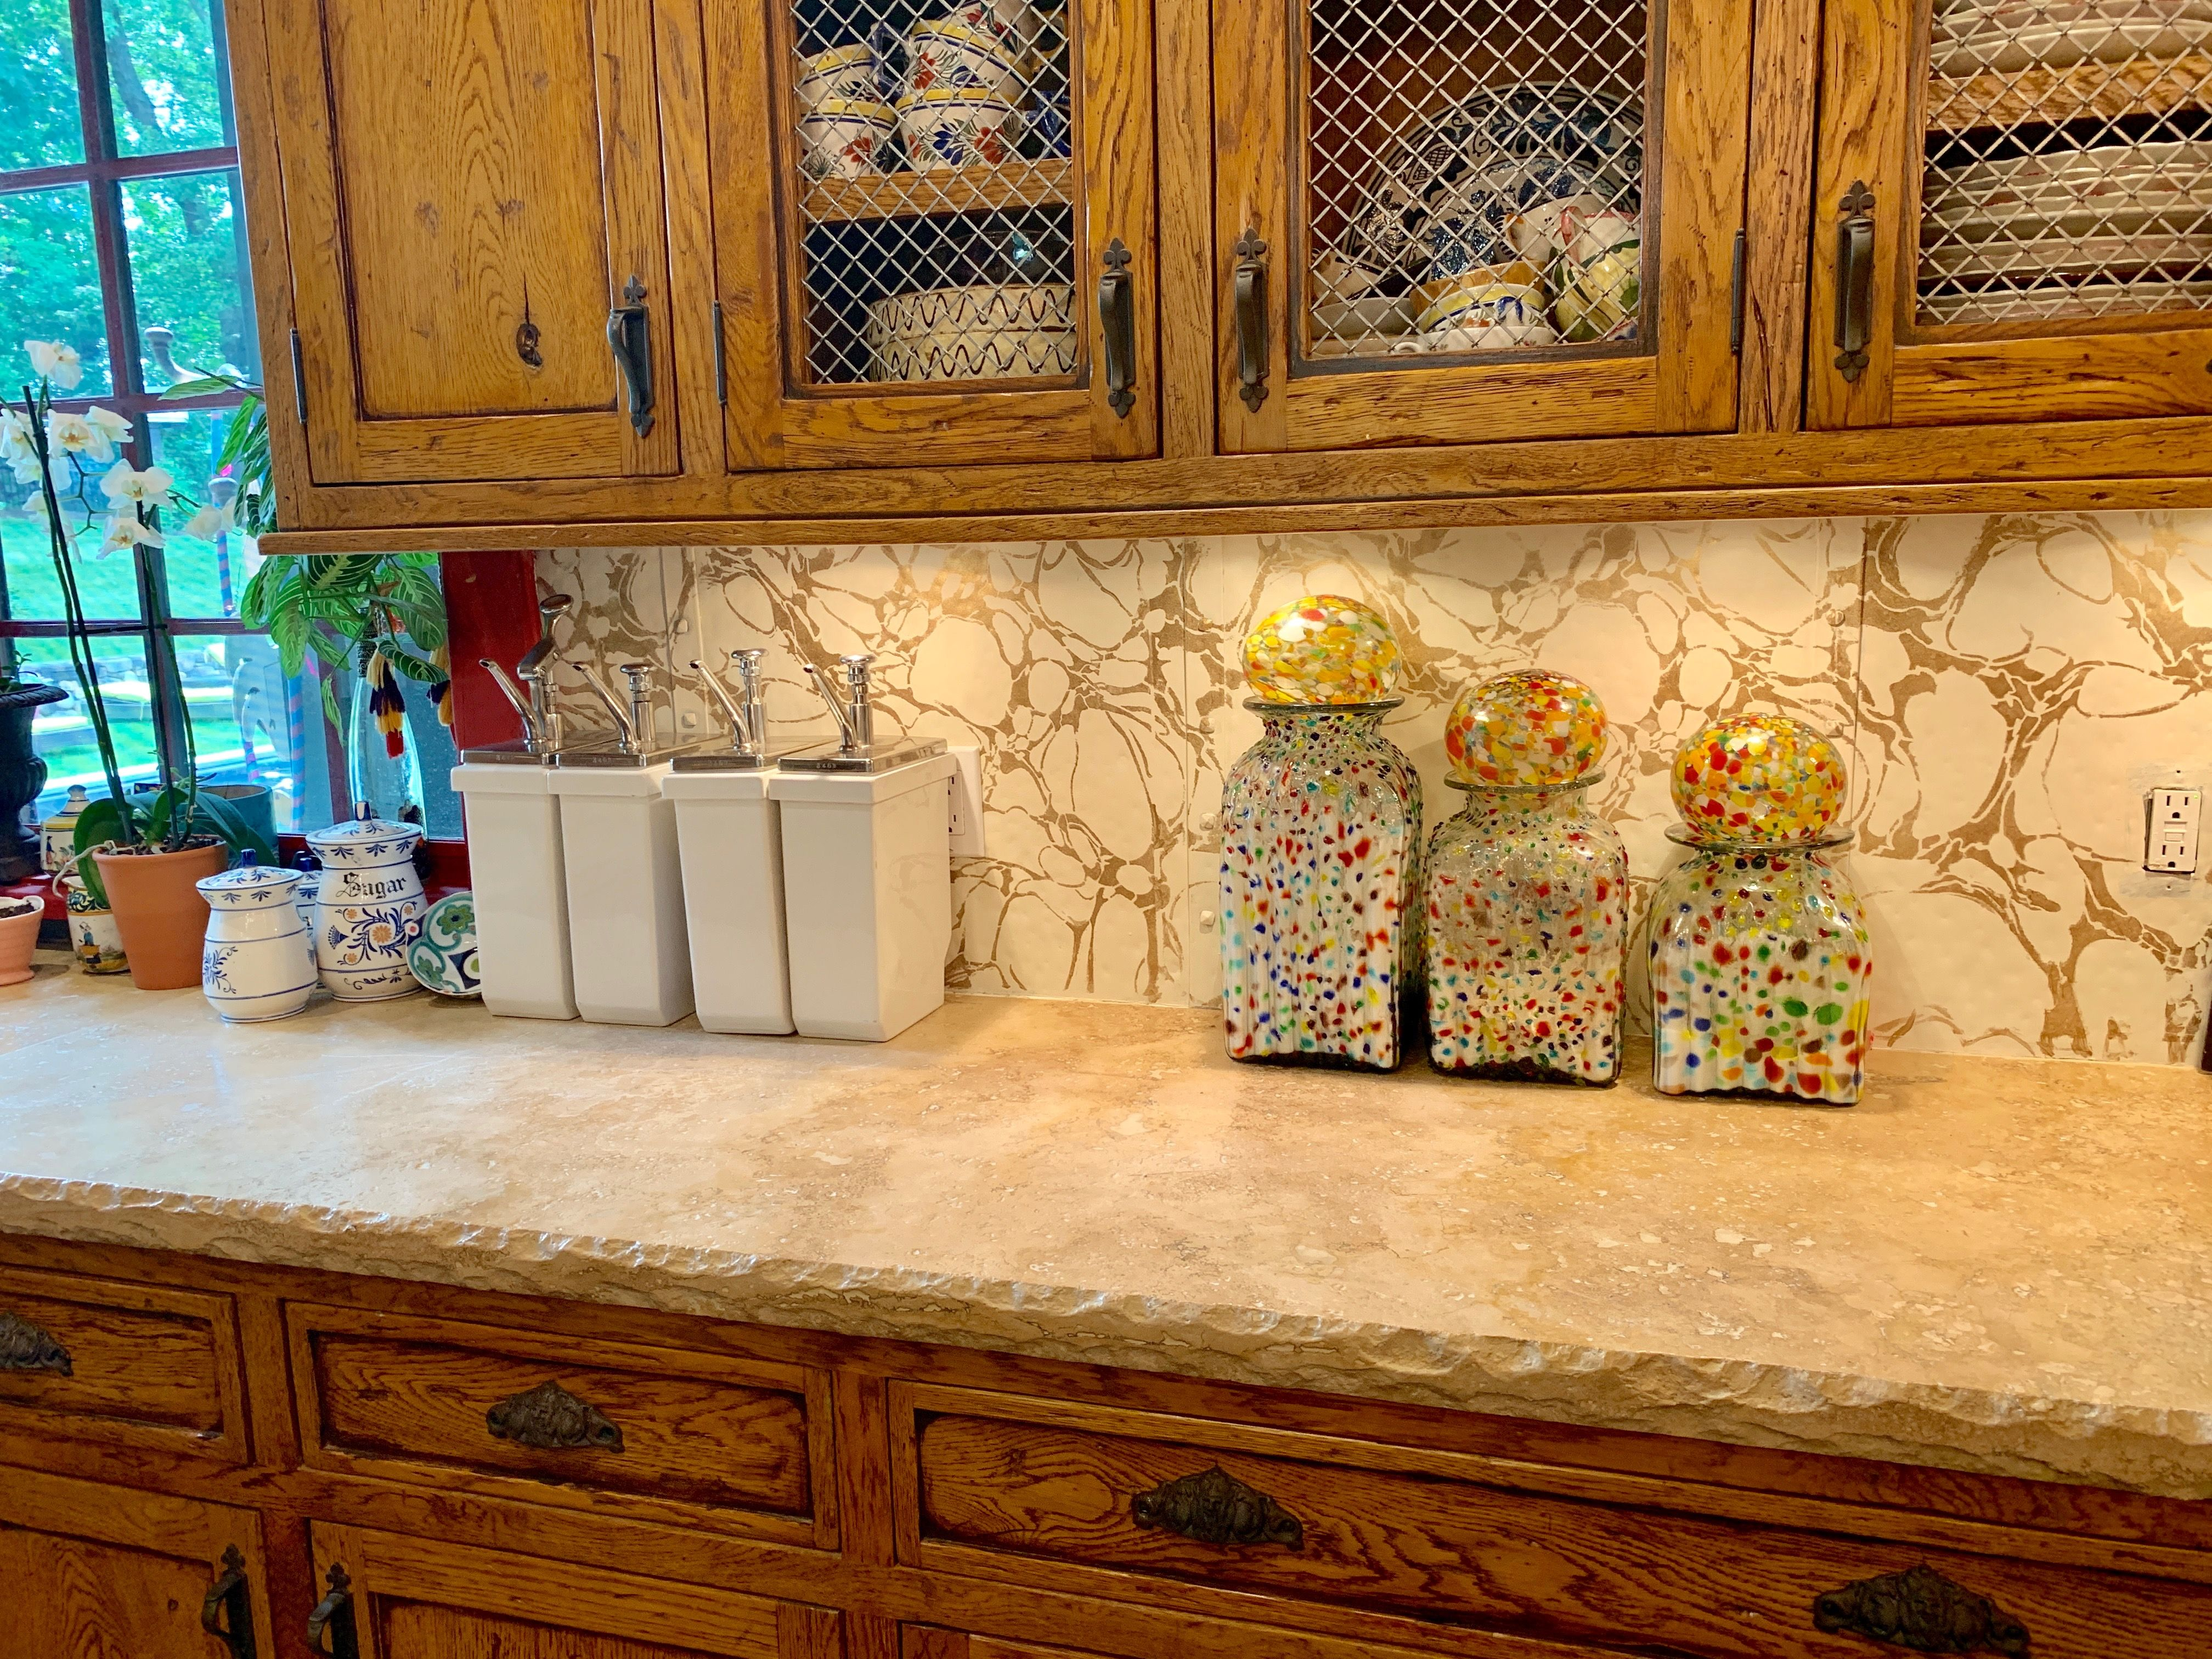 Faux Marble Backsplash Painted With Wallovers Marbleized Stencil Marbleized Marble Backsplash Wall Finishes